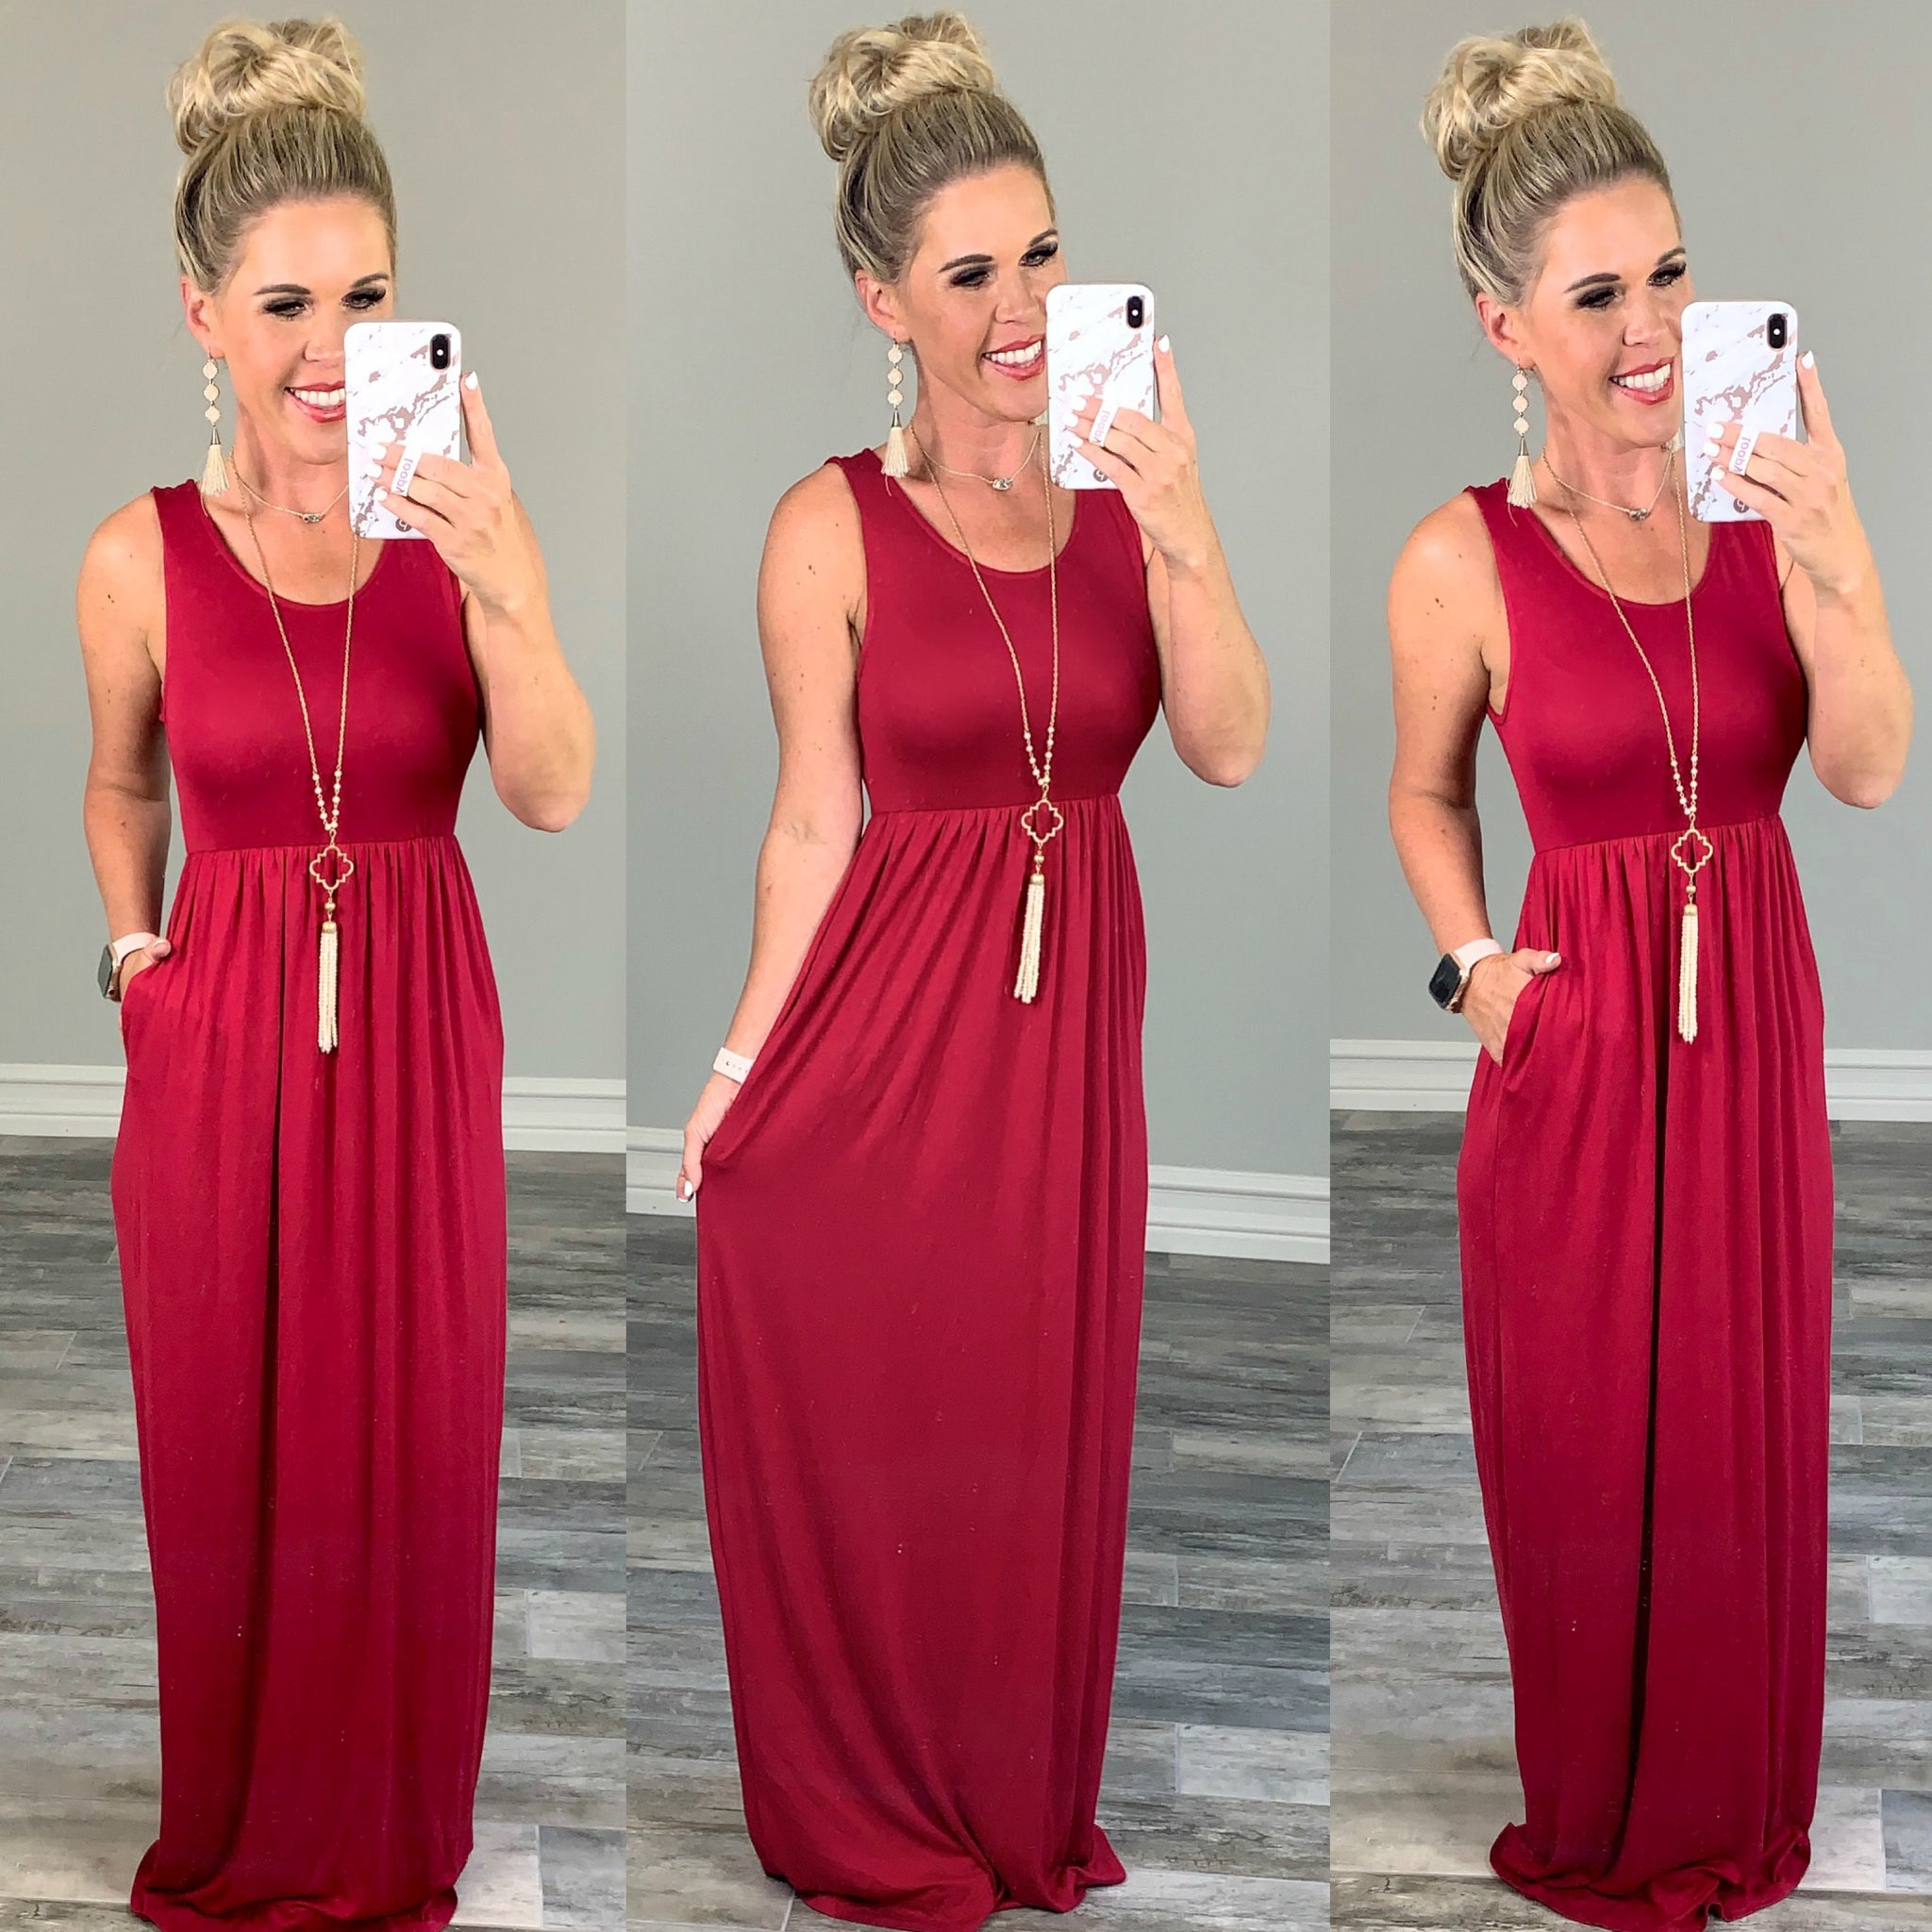 I'll Be By the Pool Maxi Dress - Red